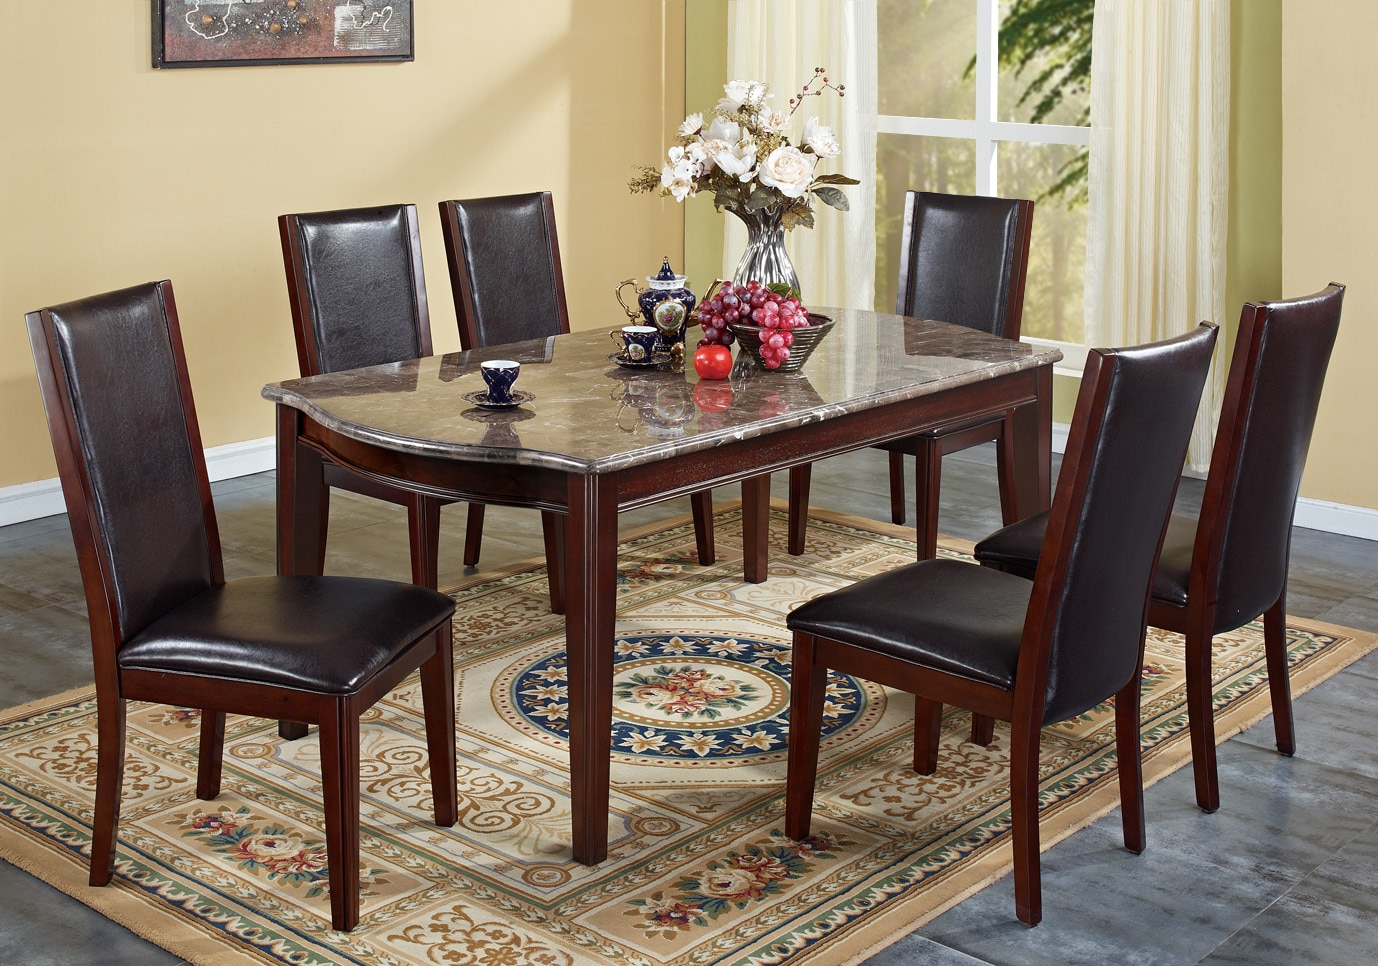 Radian Dark Brown Faux Marble Top 7-piece Dining Set